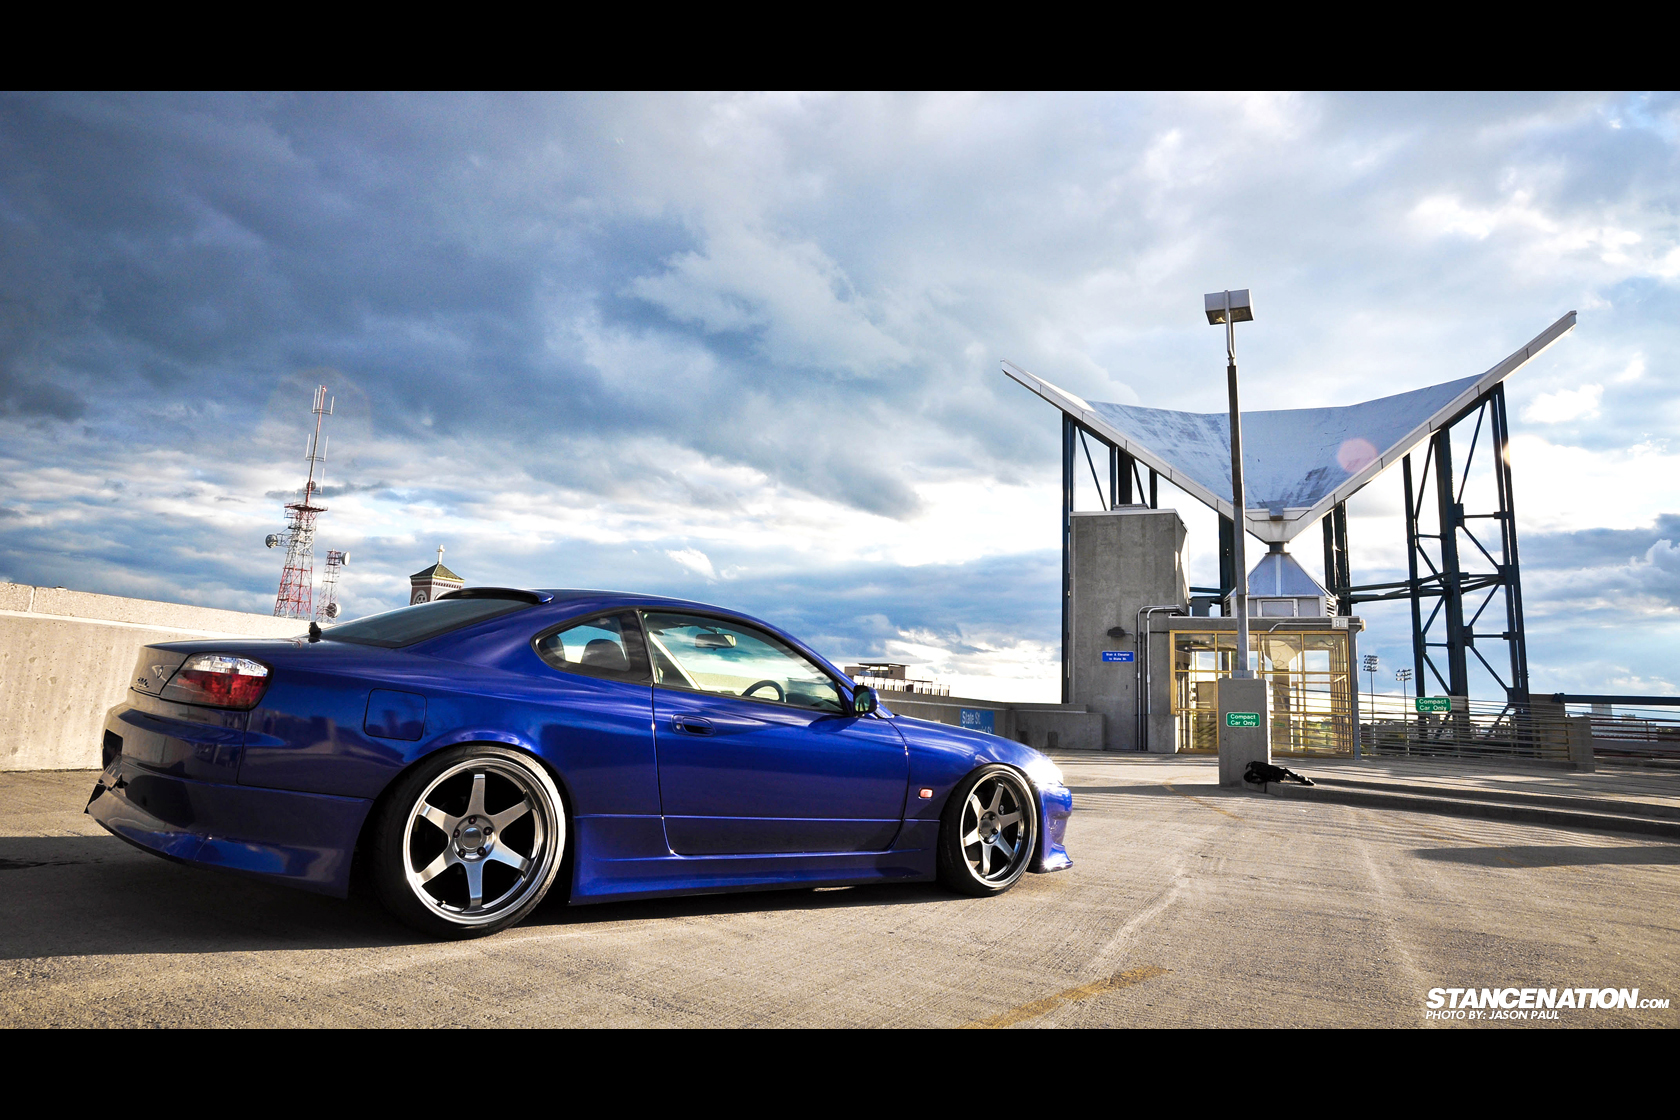 Nissan Silvia S15 For Sale Usa >> 180sx, S13, S14, S15 Picture Thread - Page 739